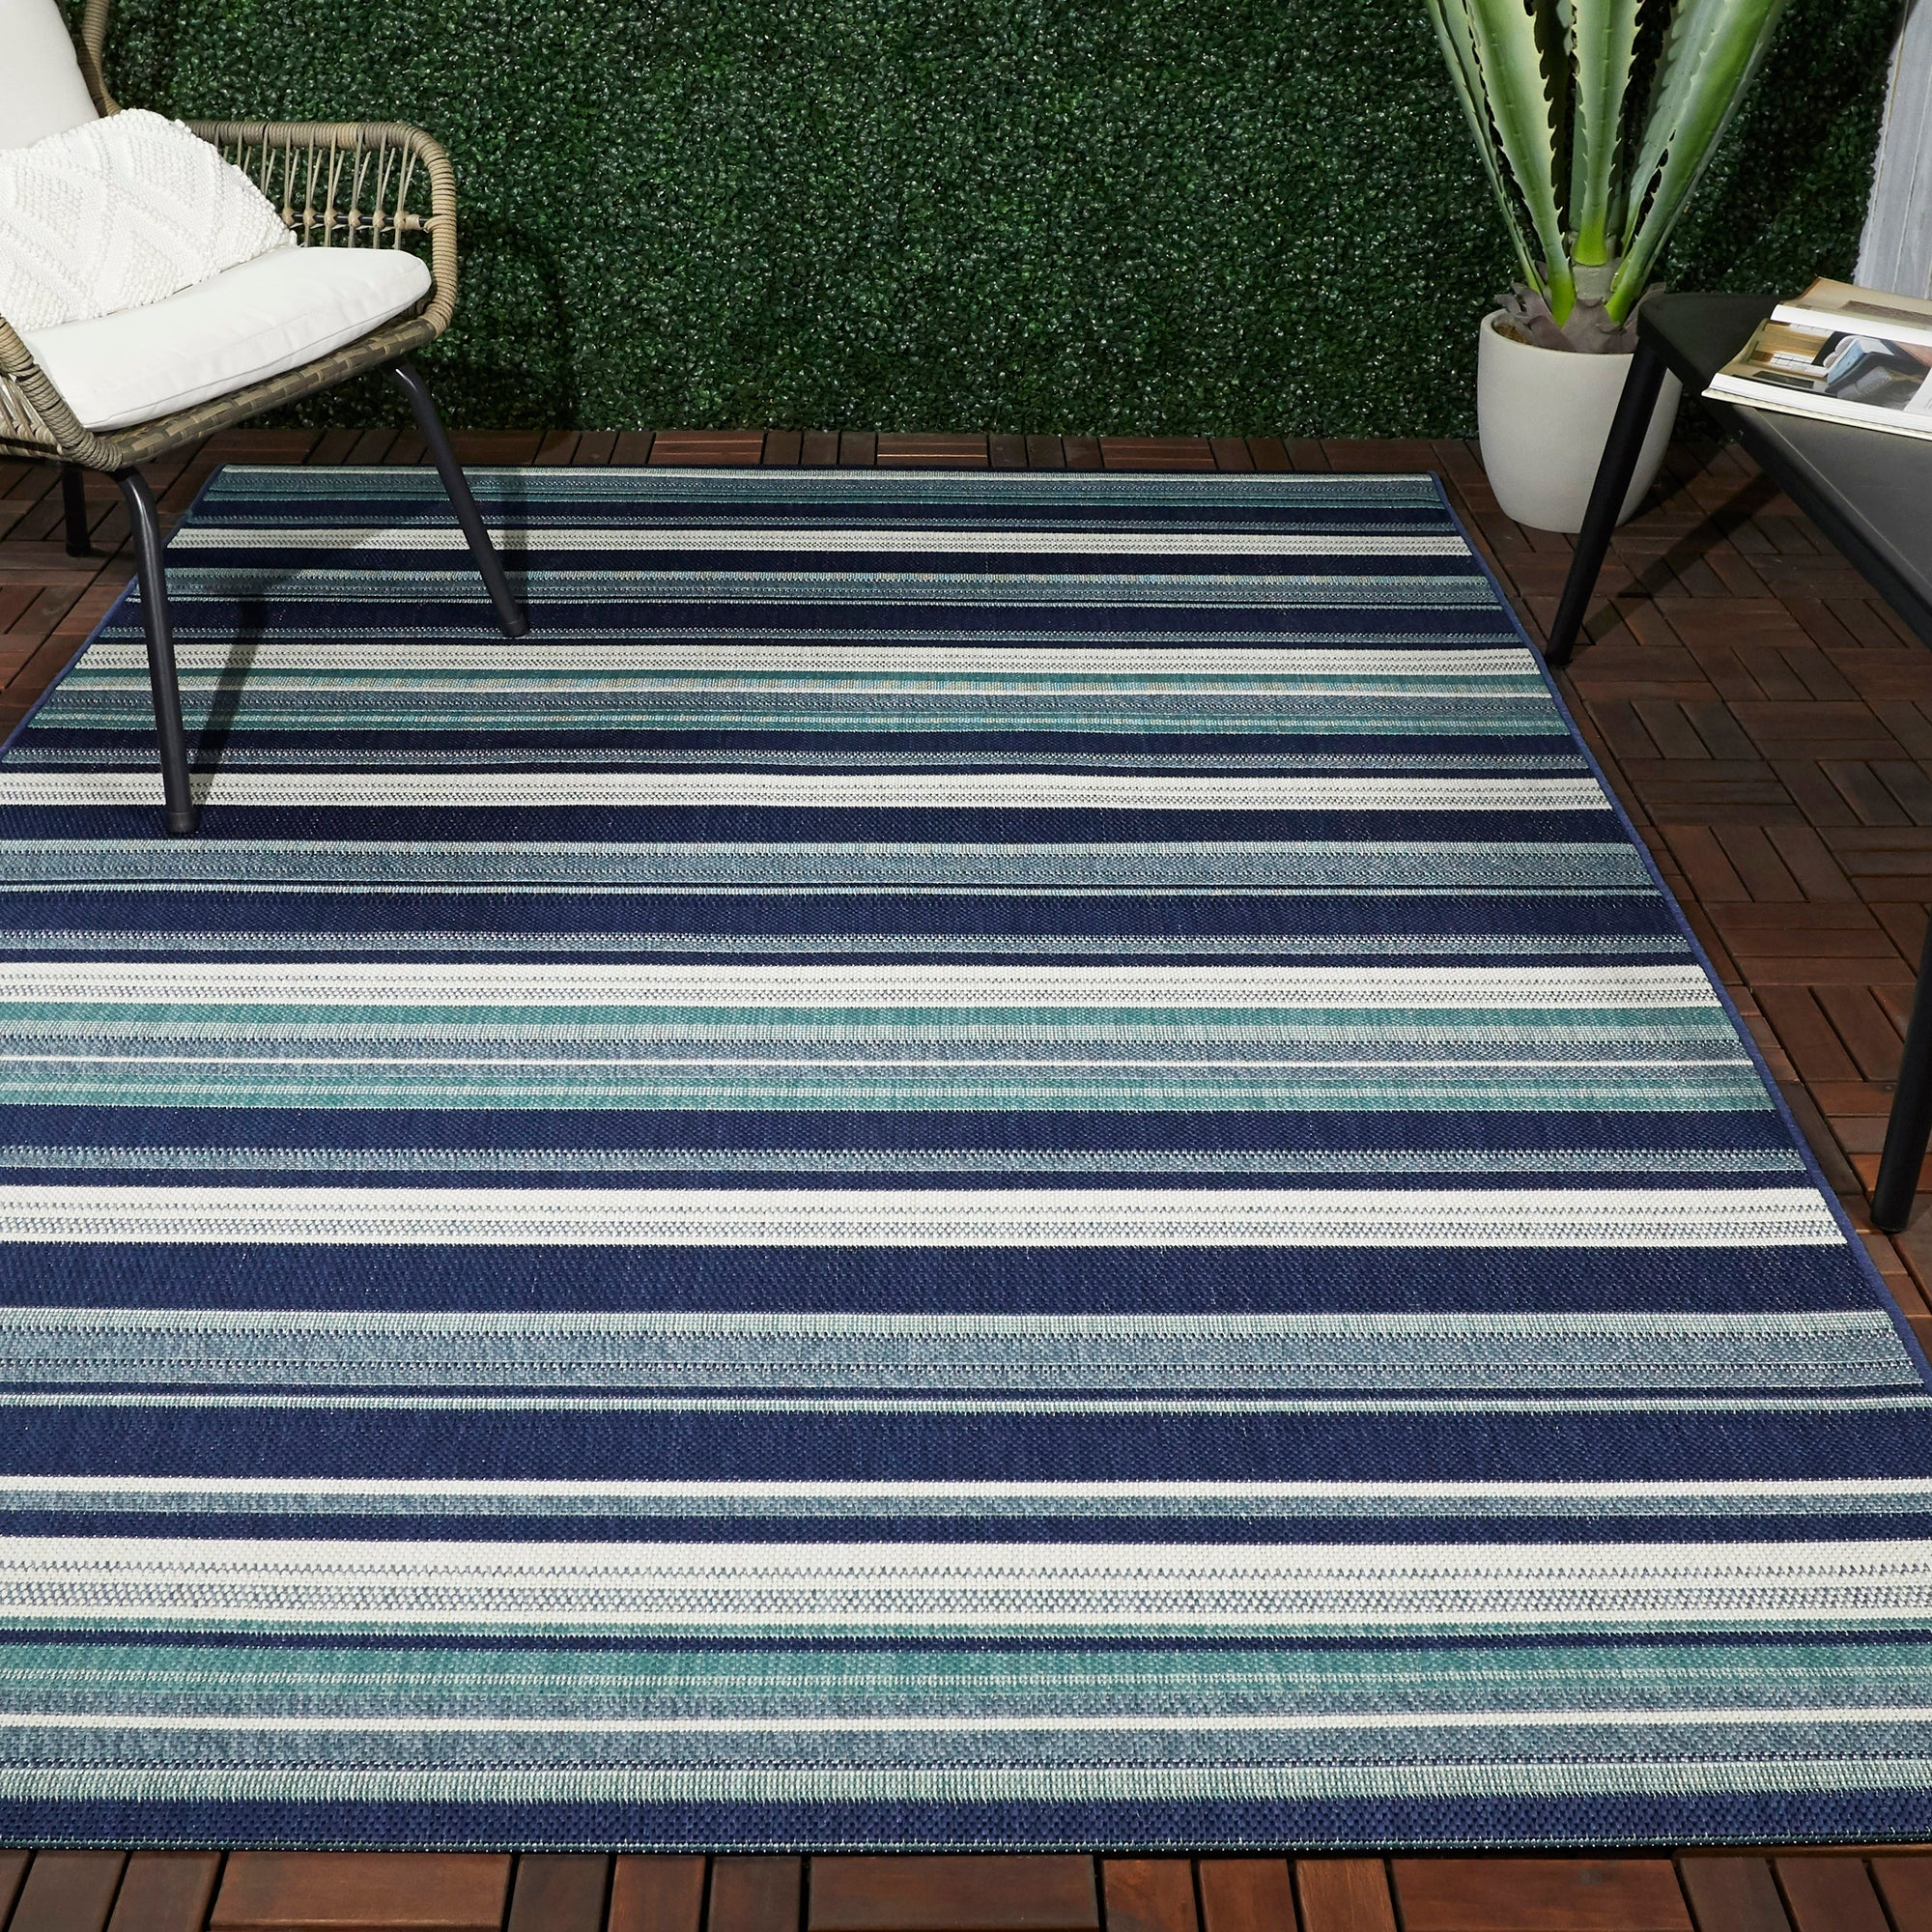 Shop For Lloyd Striped Indoor Outdoor Area Rug Get Free Delivery On Everything At Overstock Your Online Home Decor Store Get 5 In Rewards With Club O 32415311